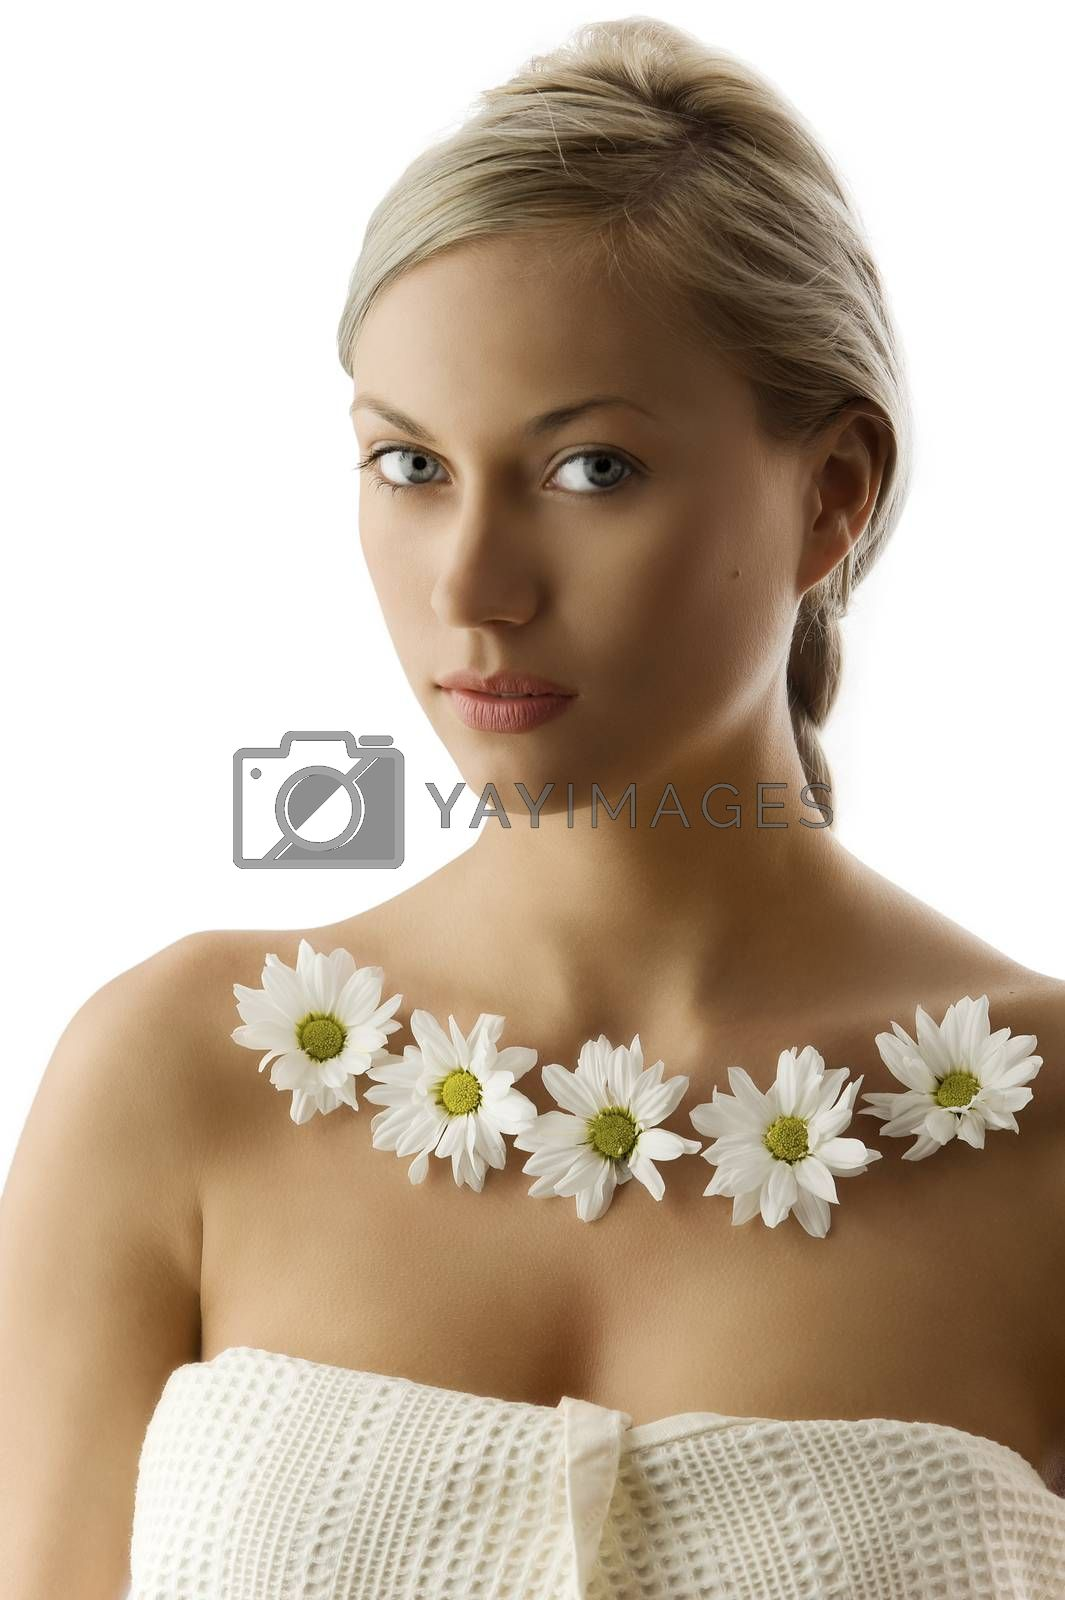 Royalty free image of blond with white daisy by fotoCD